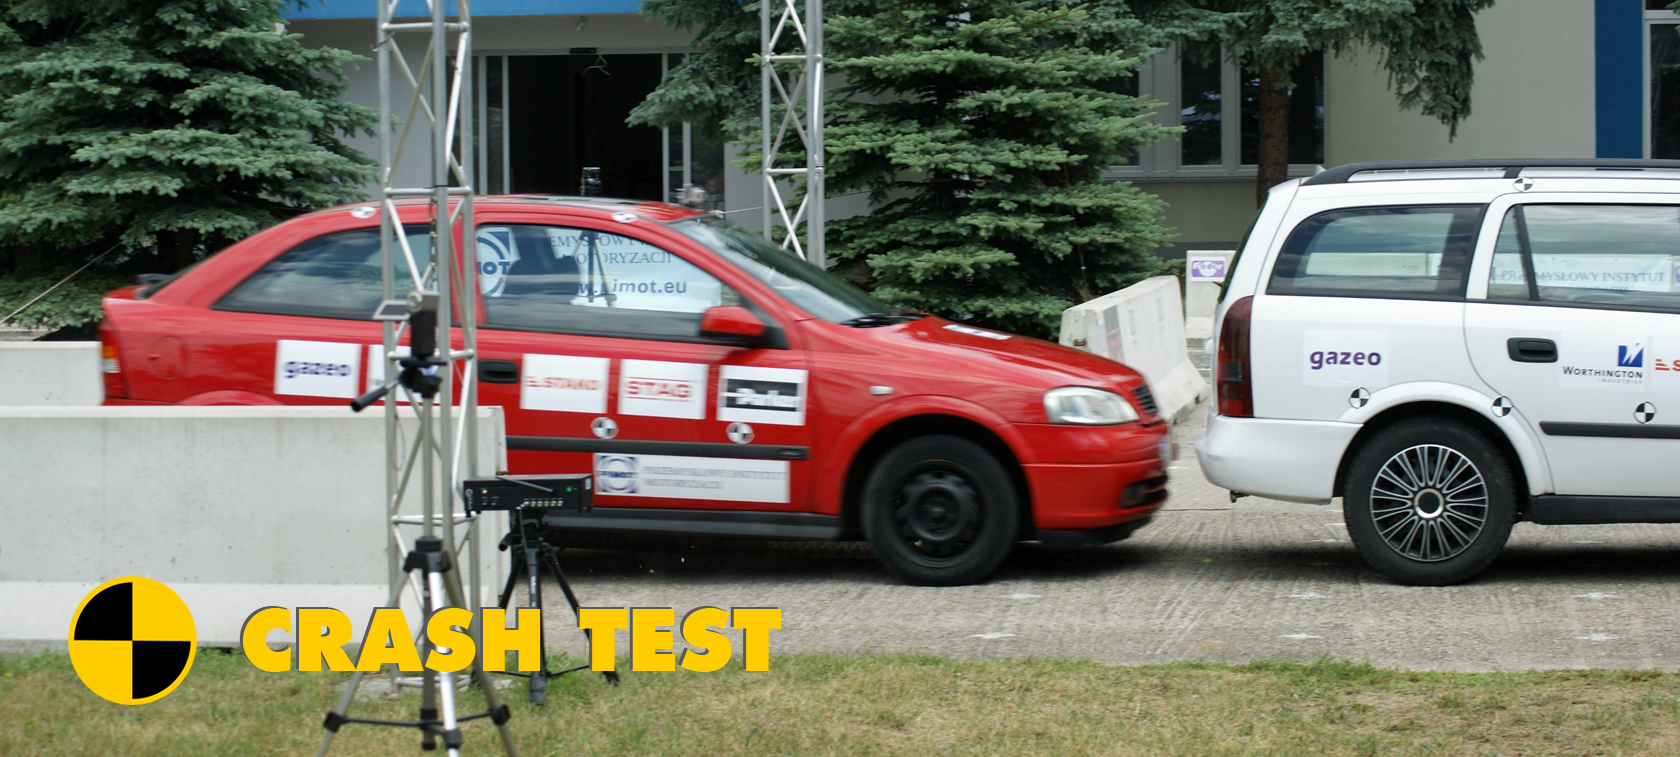 Autogas-powered car crash test